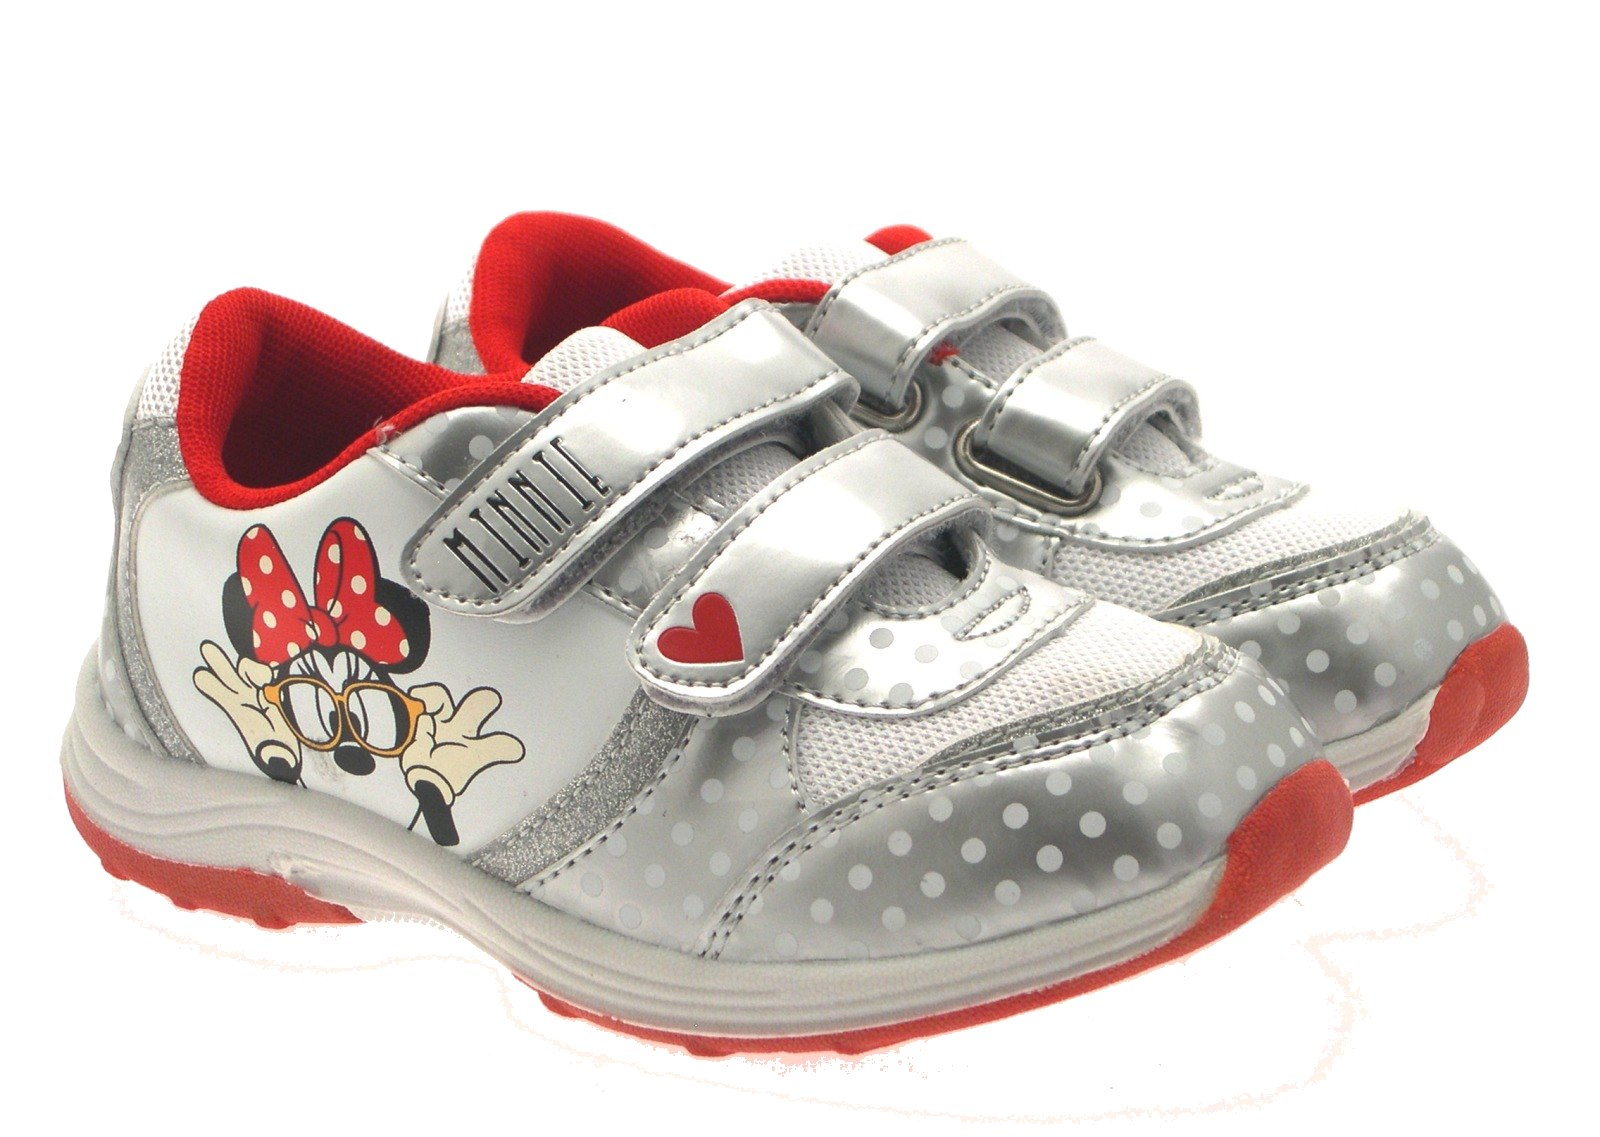 Minnie Mouse Flat Shoes For Girls Size